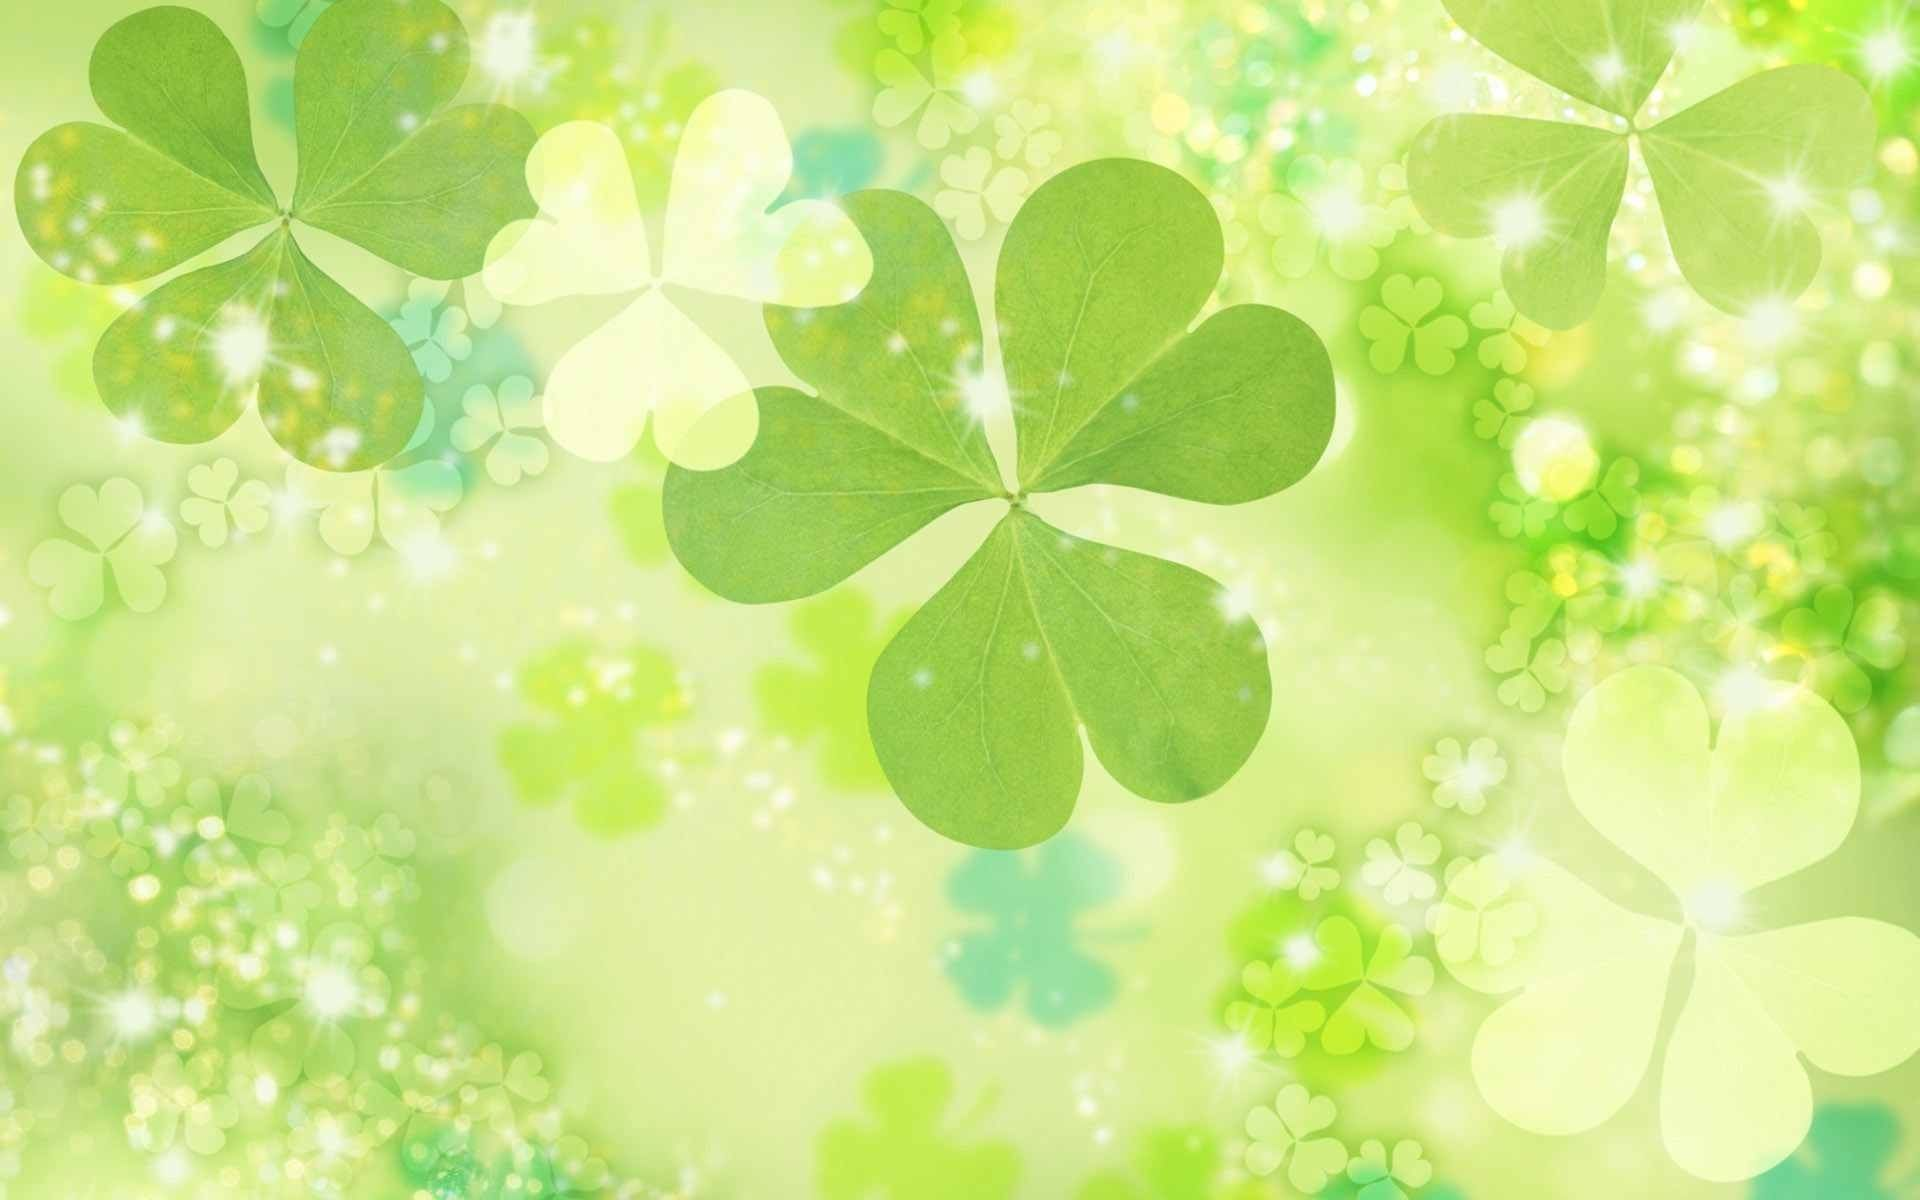 10 Latest St Patrick Day Backgrounds FULL HD 1080p For PC 1920x1200